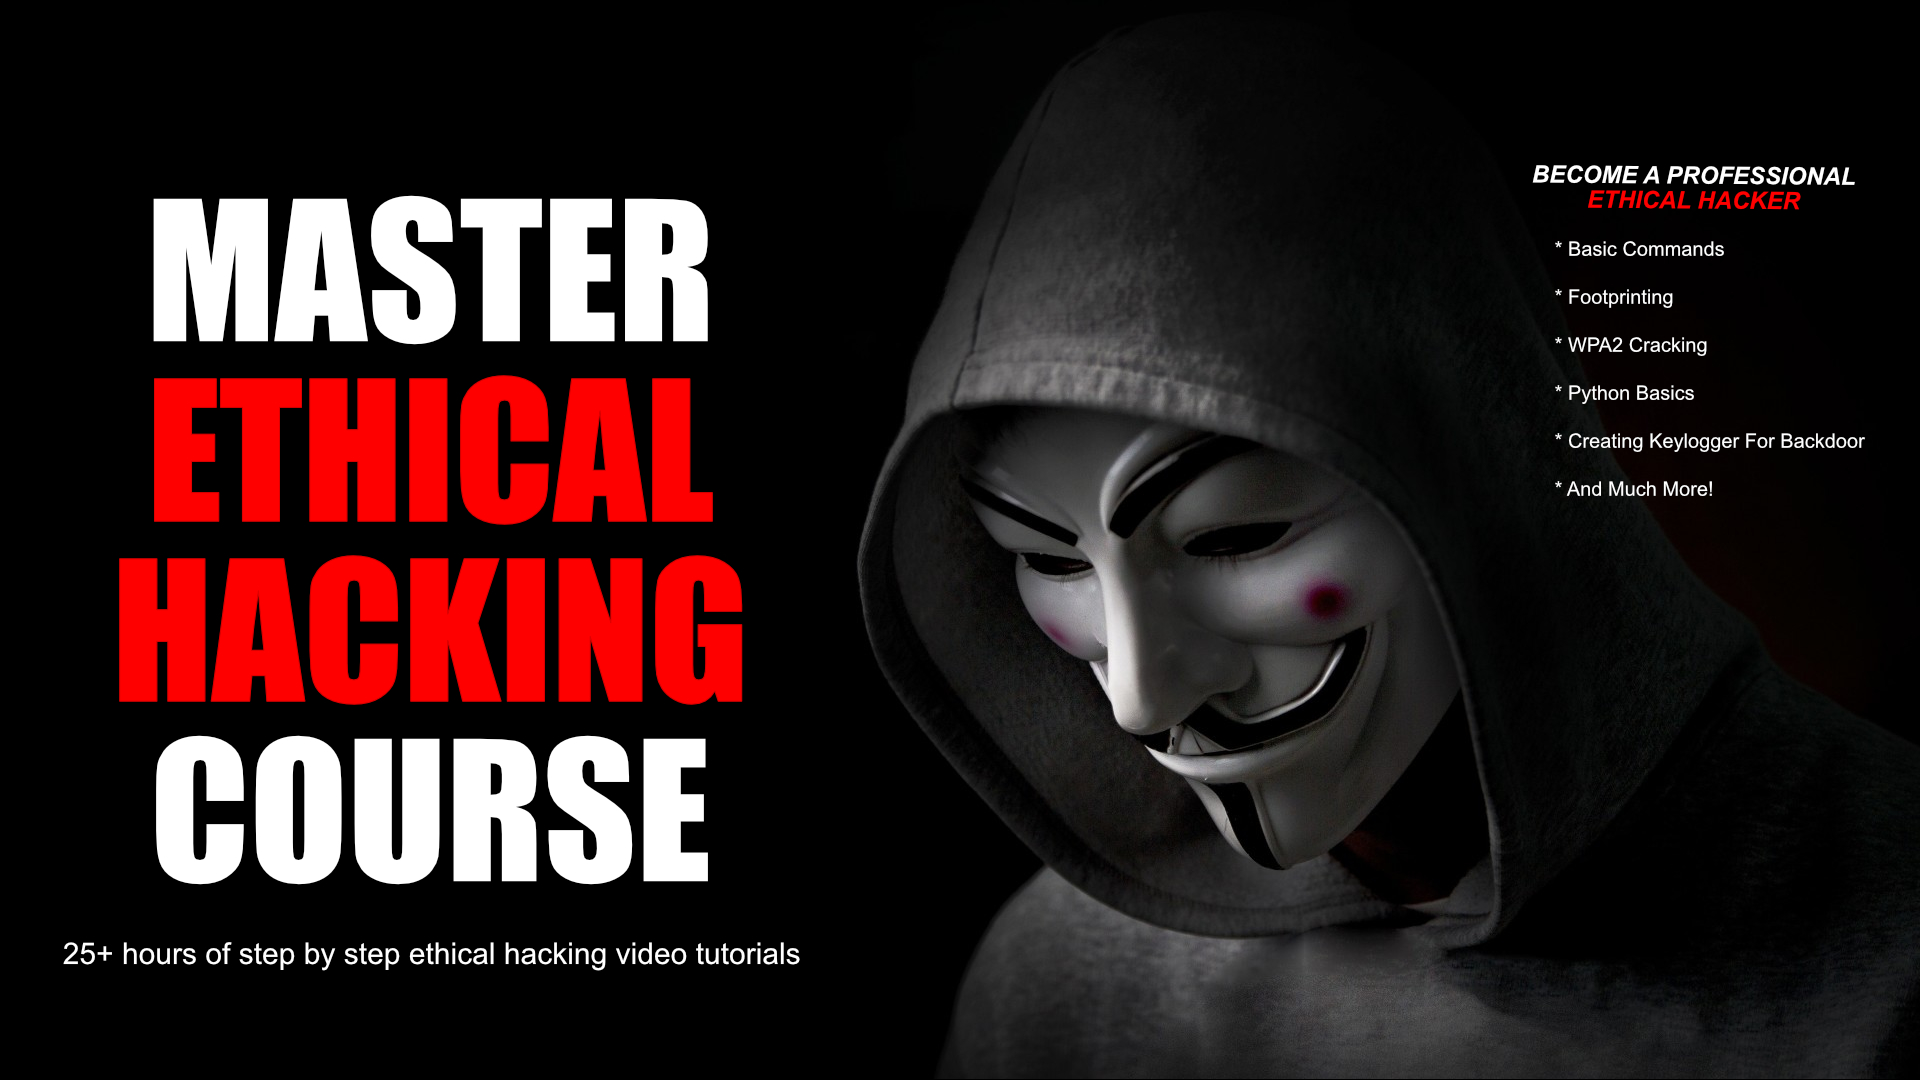 Master Ethical Hacking Book Ad